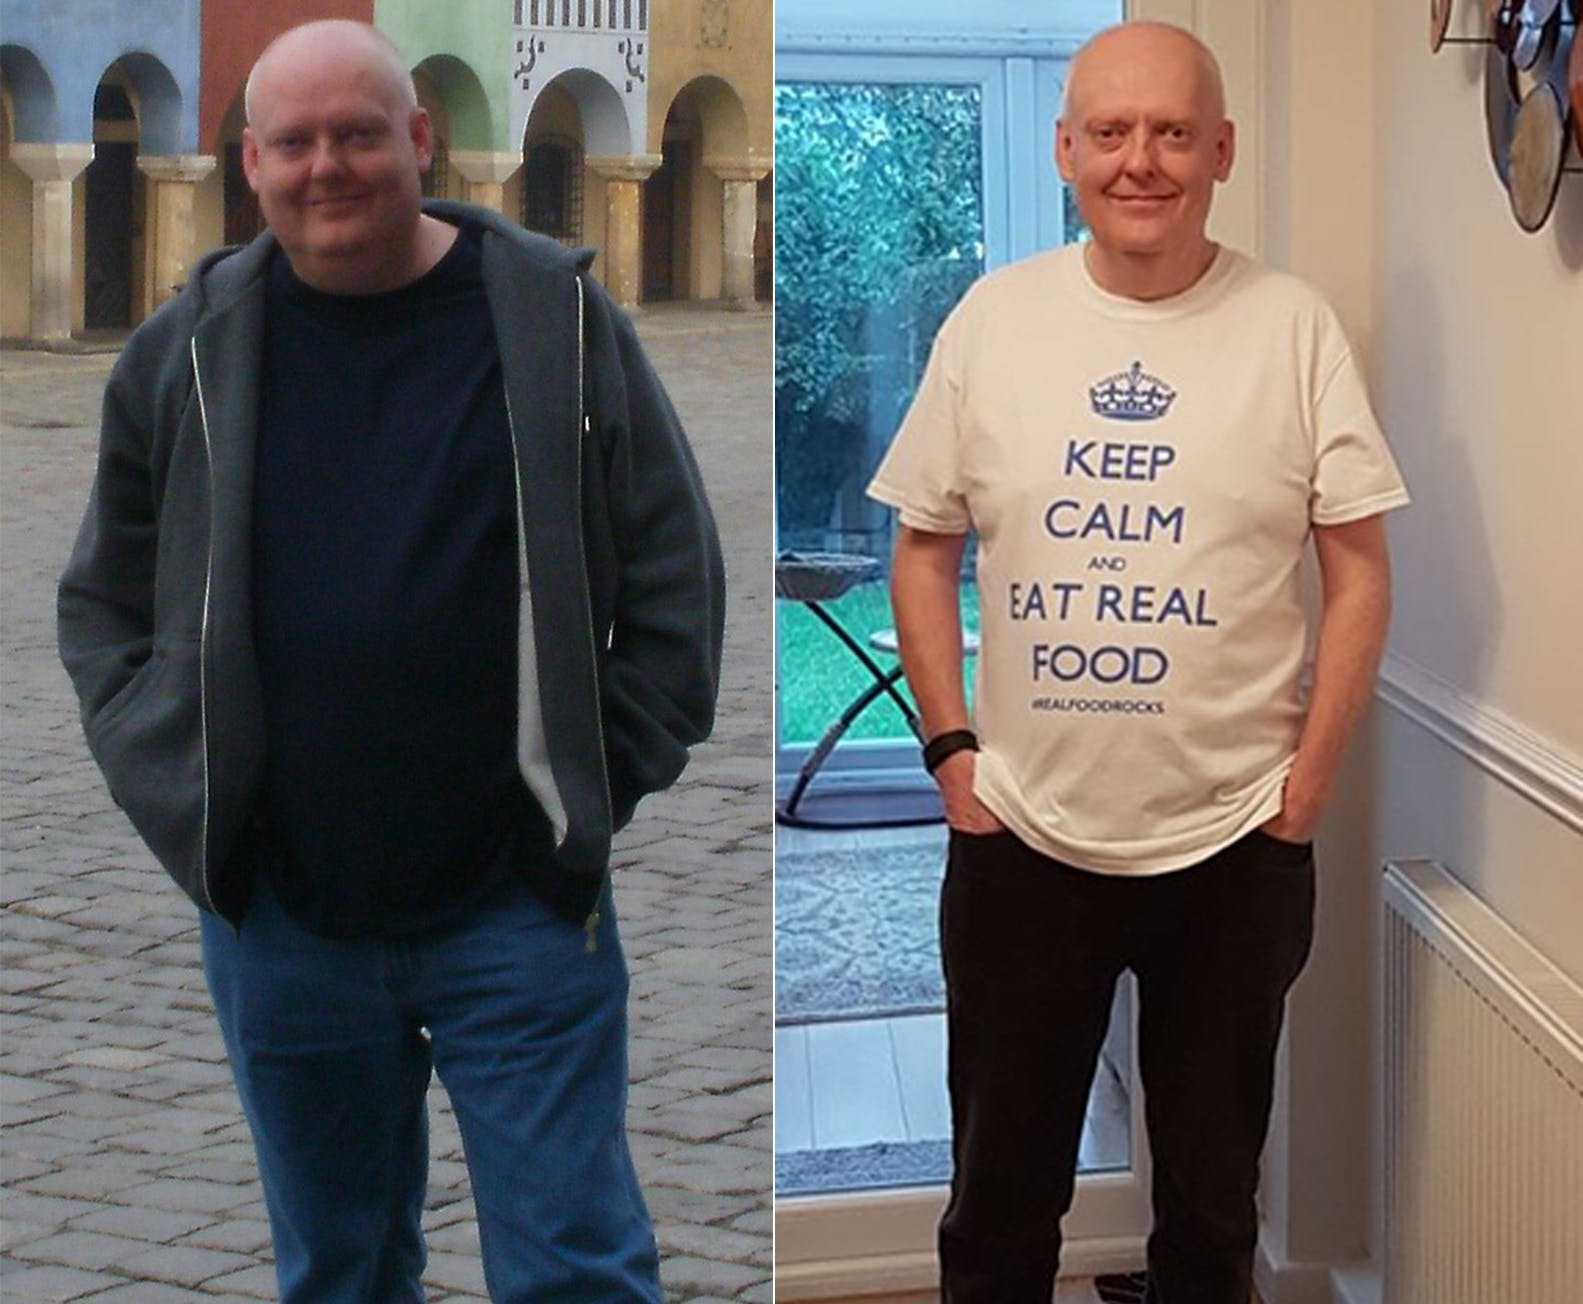 The success on low carb continues